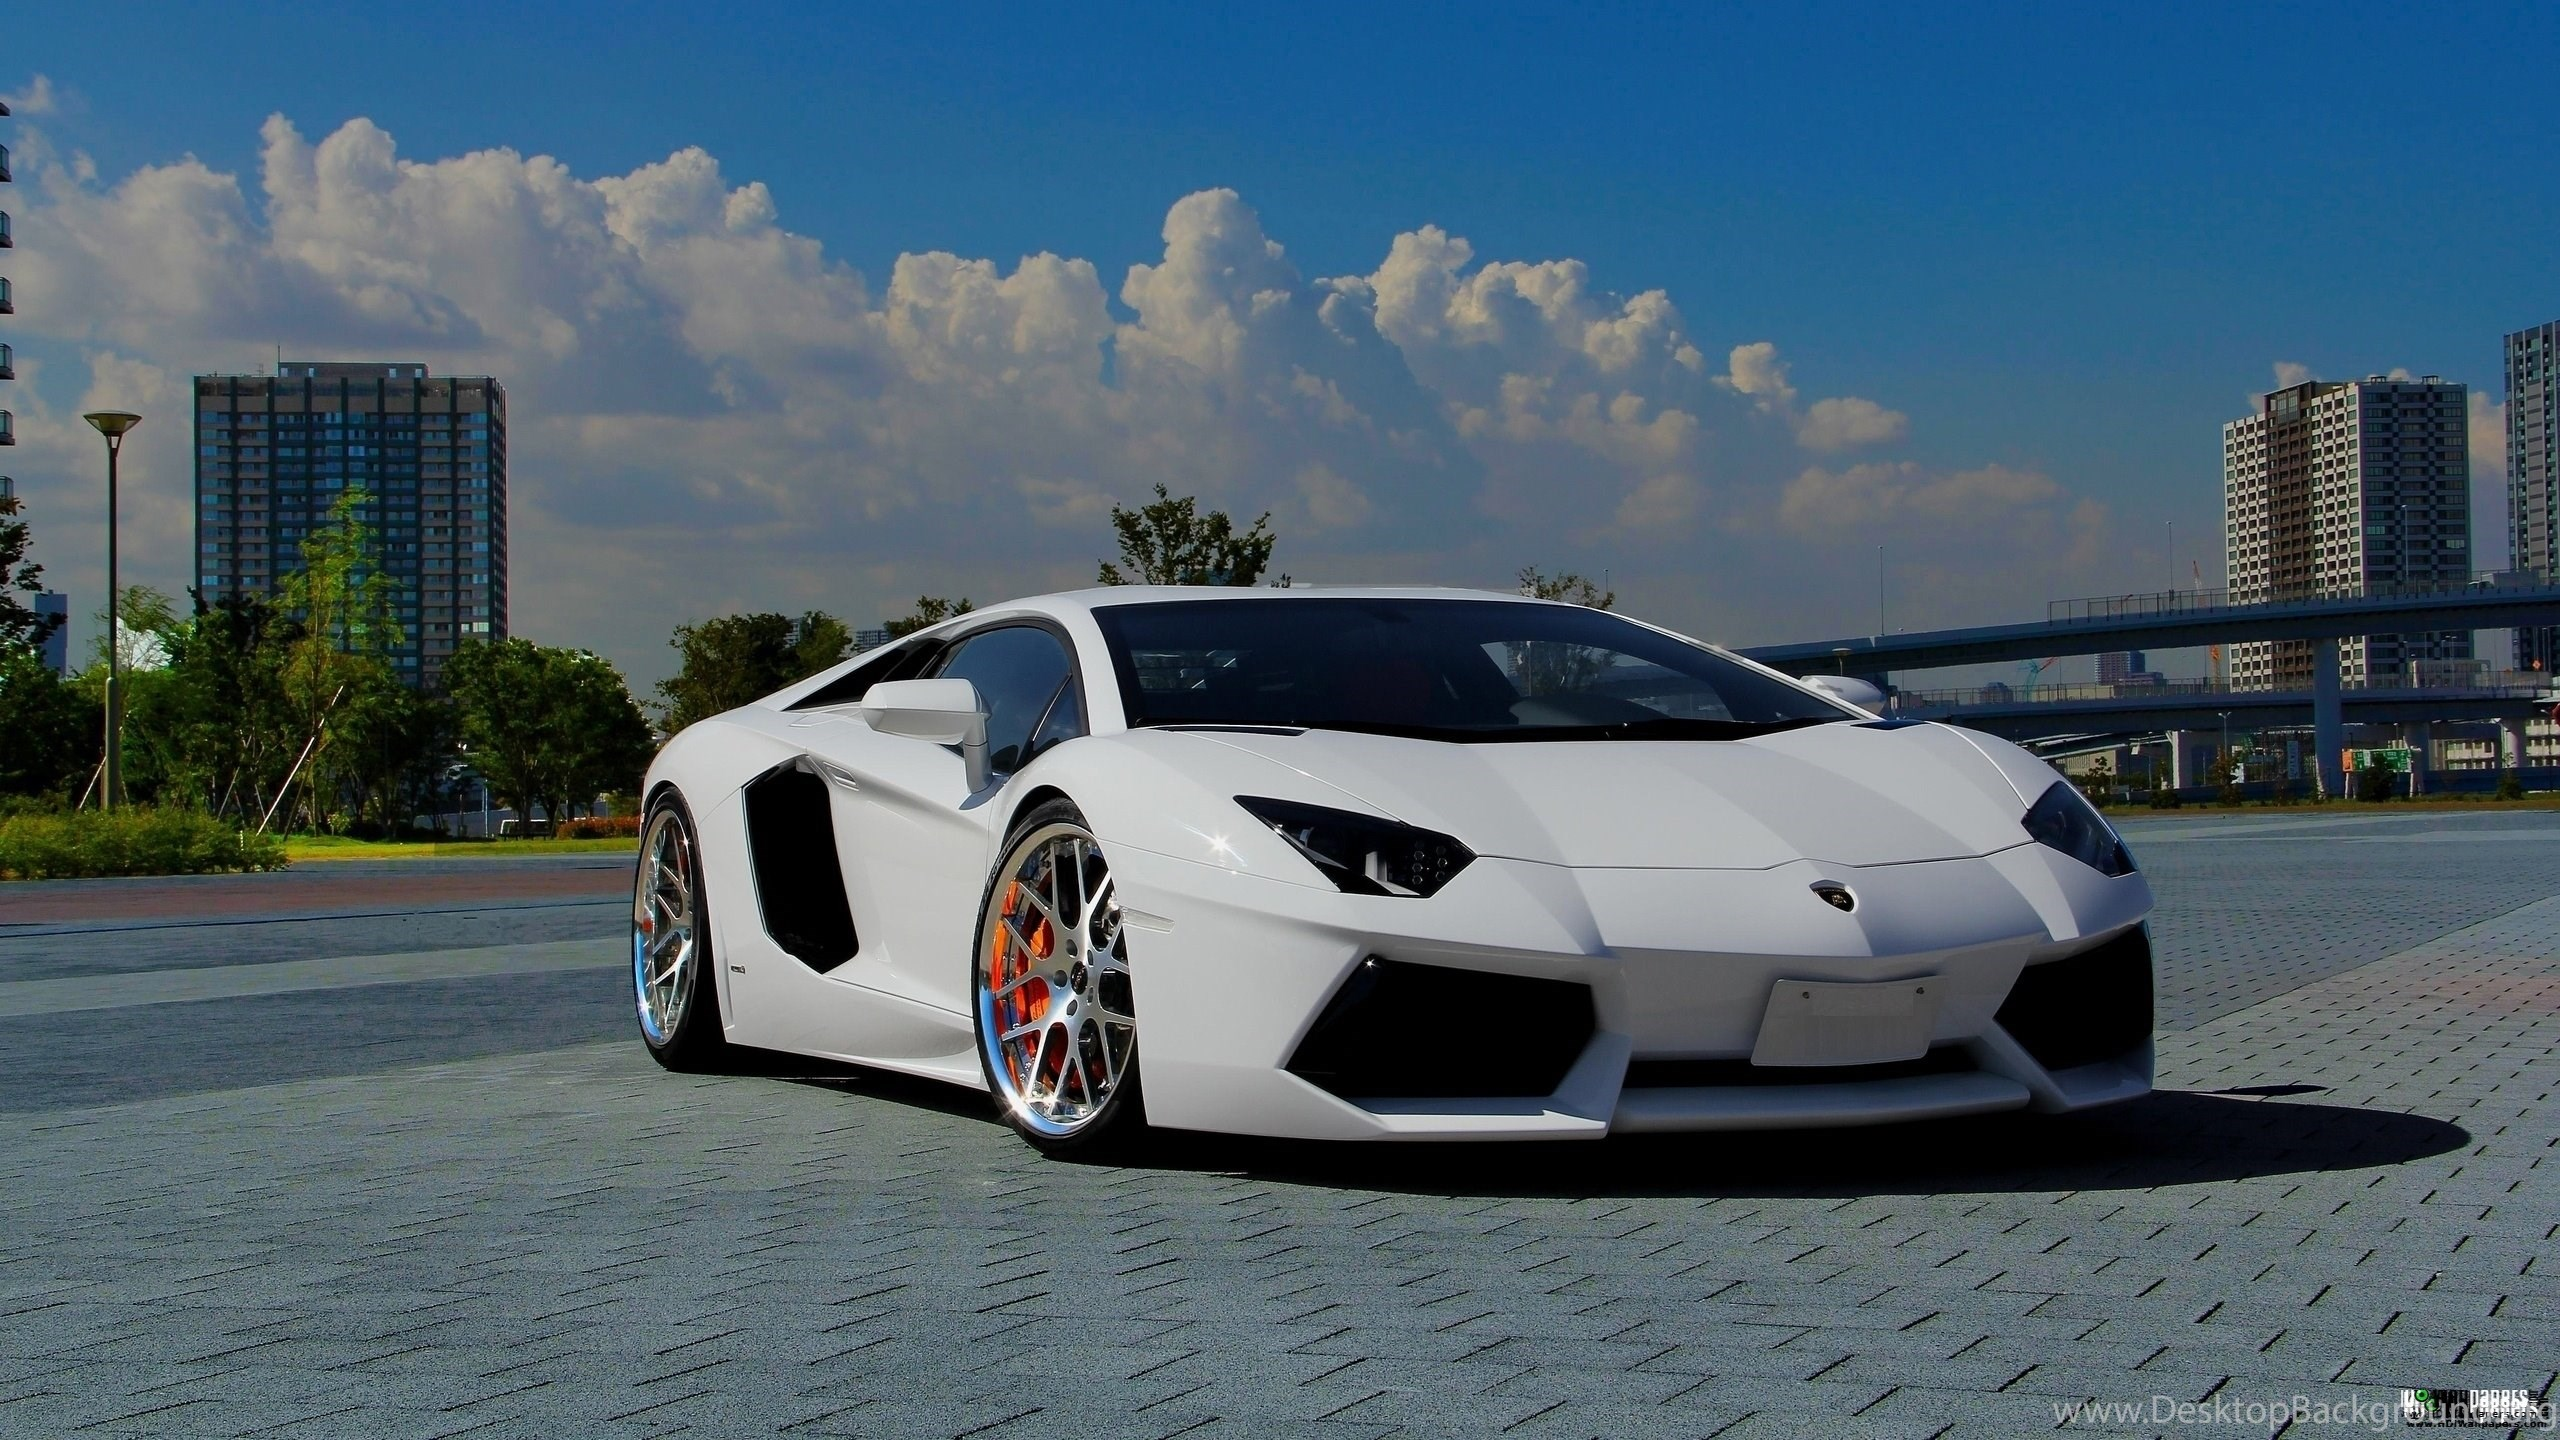 30 Best Desktop Cars Hd Wallpapers Birthday Wishes 3d Wallpapers